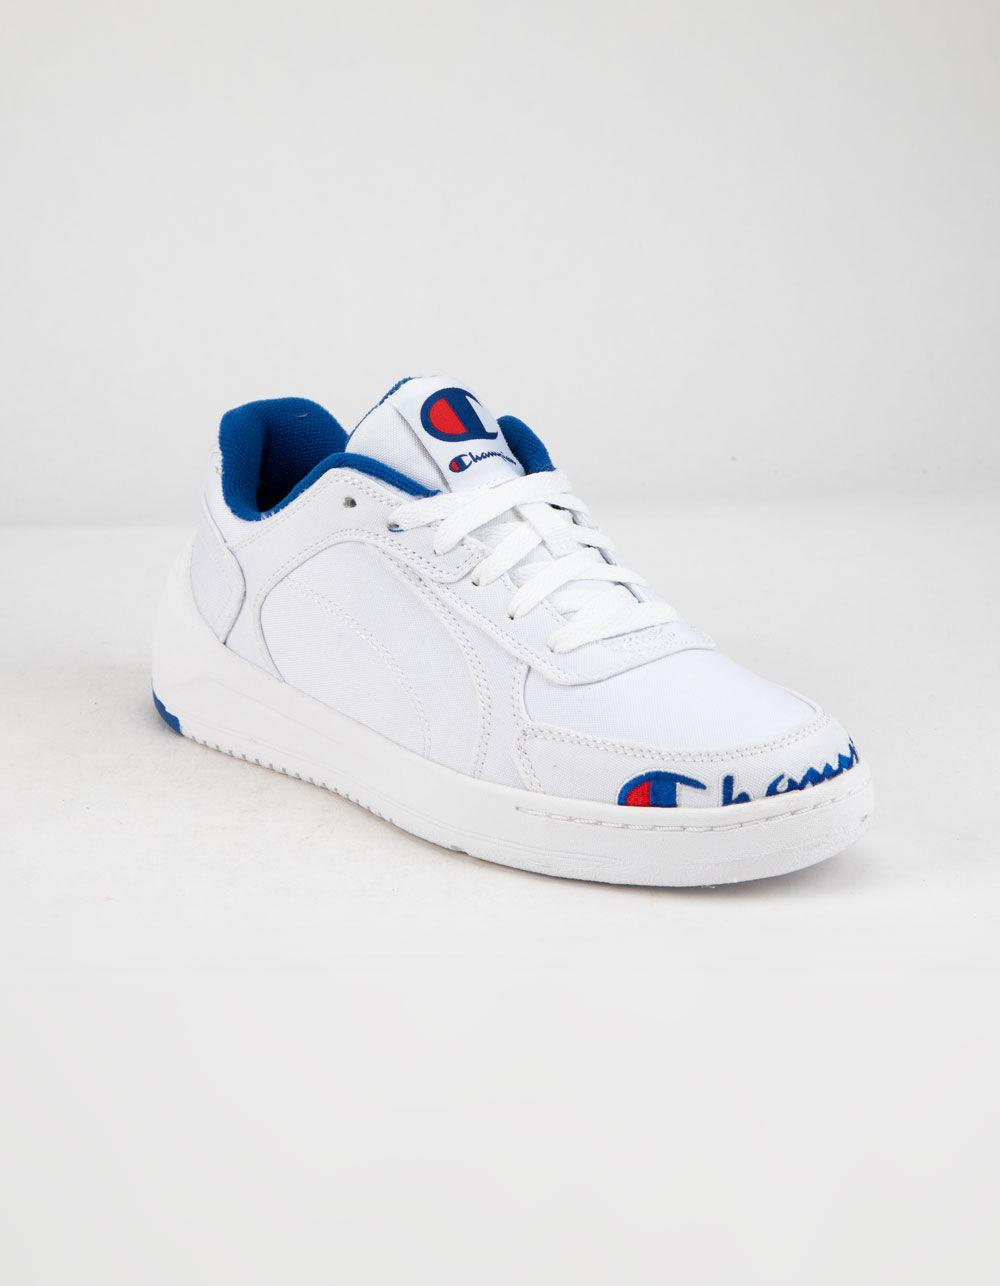 8f4cb6a8a8c9e Lyst - Champion Super C Court Low Sneakers in White - Save 1%